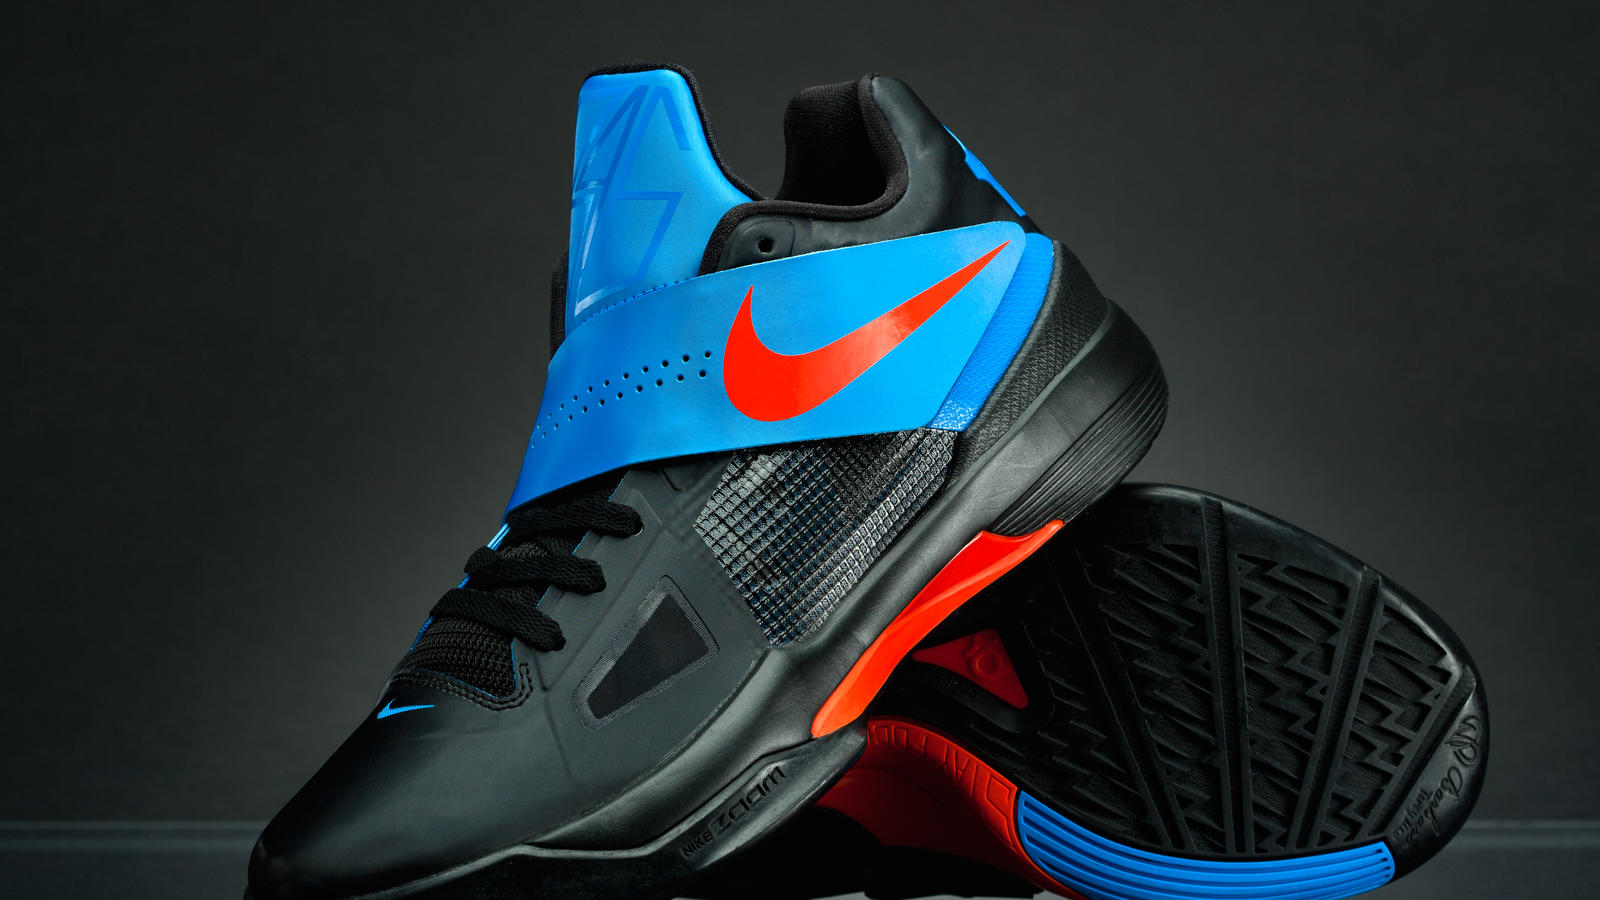 72f58065305 Launching December 3, the Nike Zoom  buy nike zoom kd iv ...